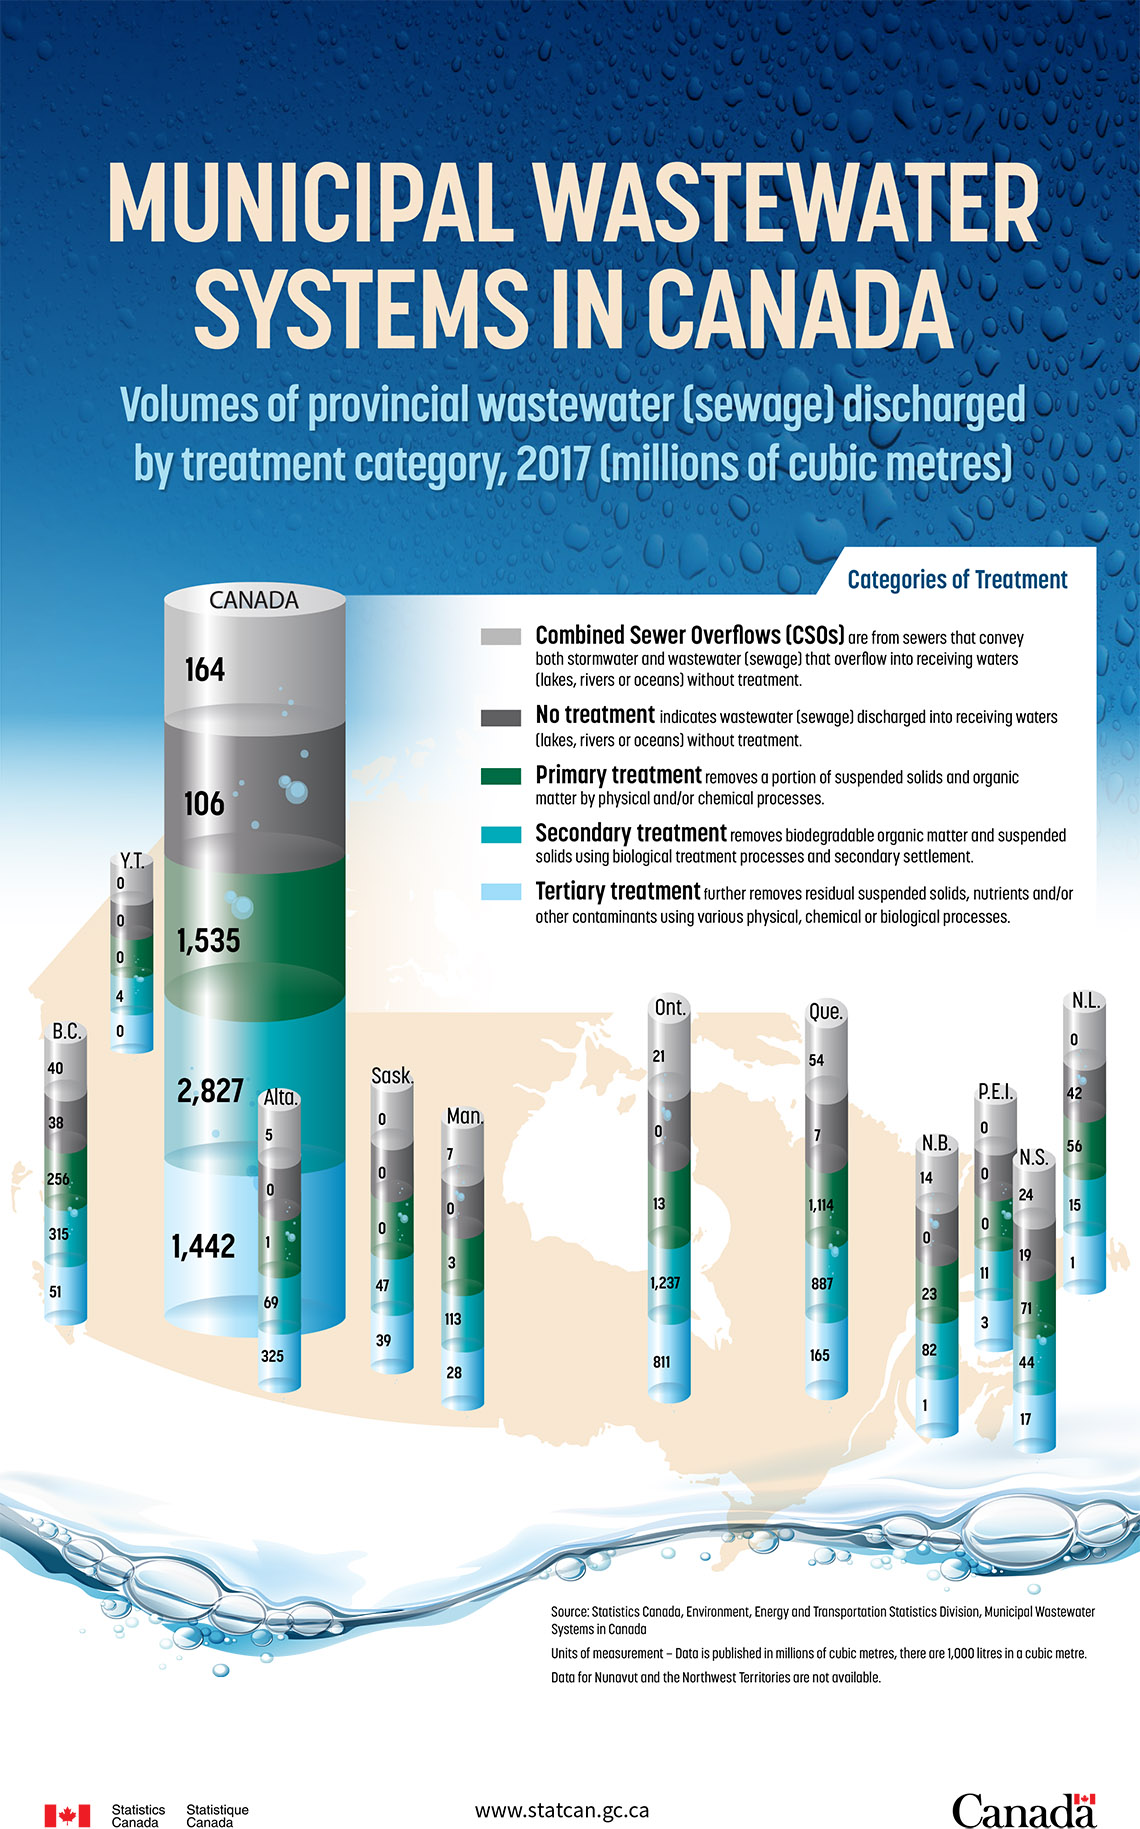 Municipal Wastewater Systems in Canada